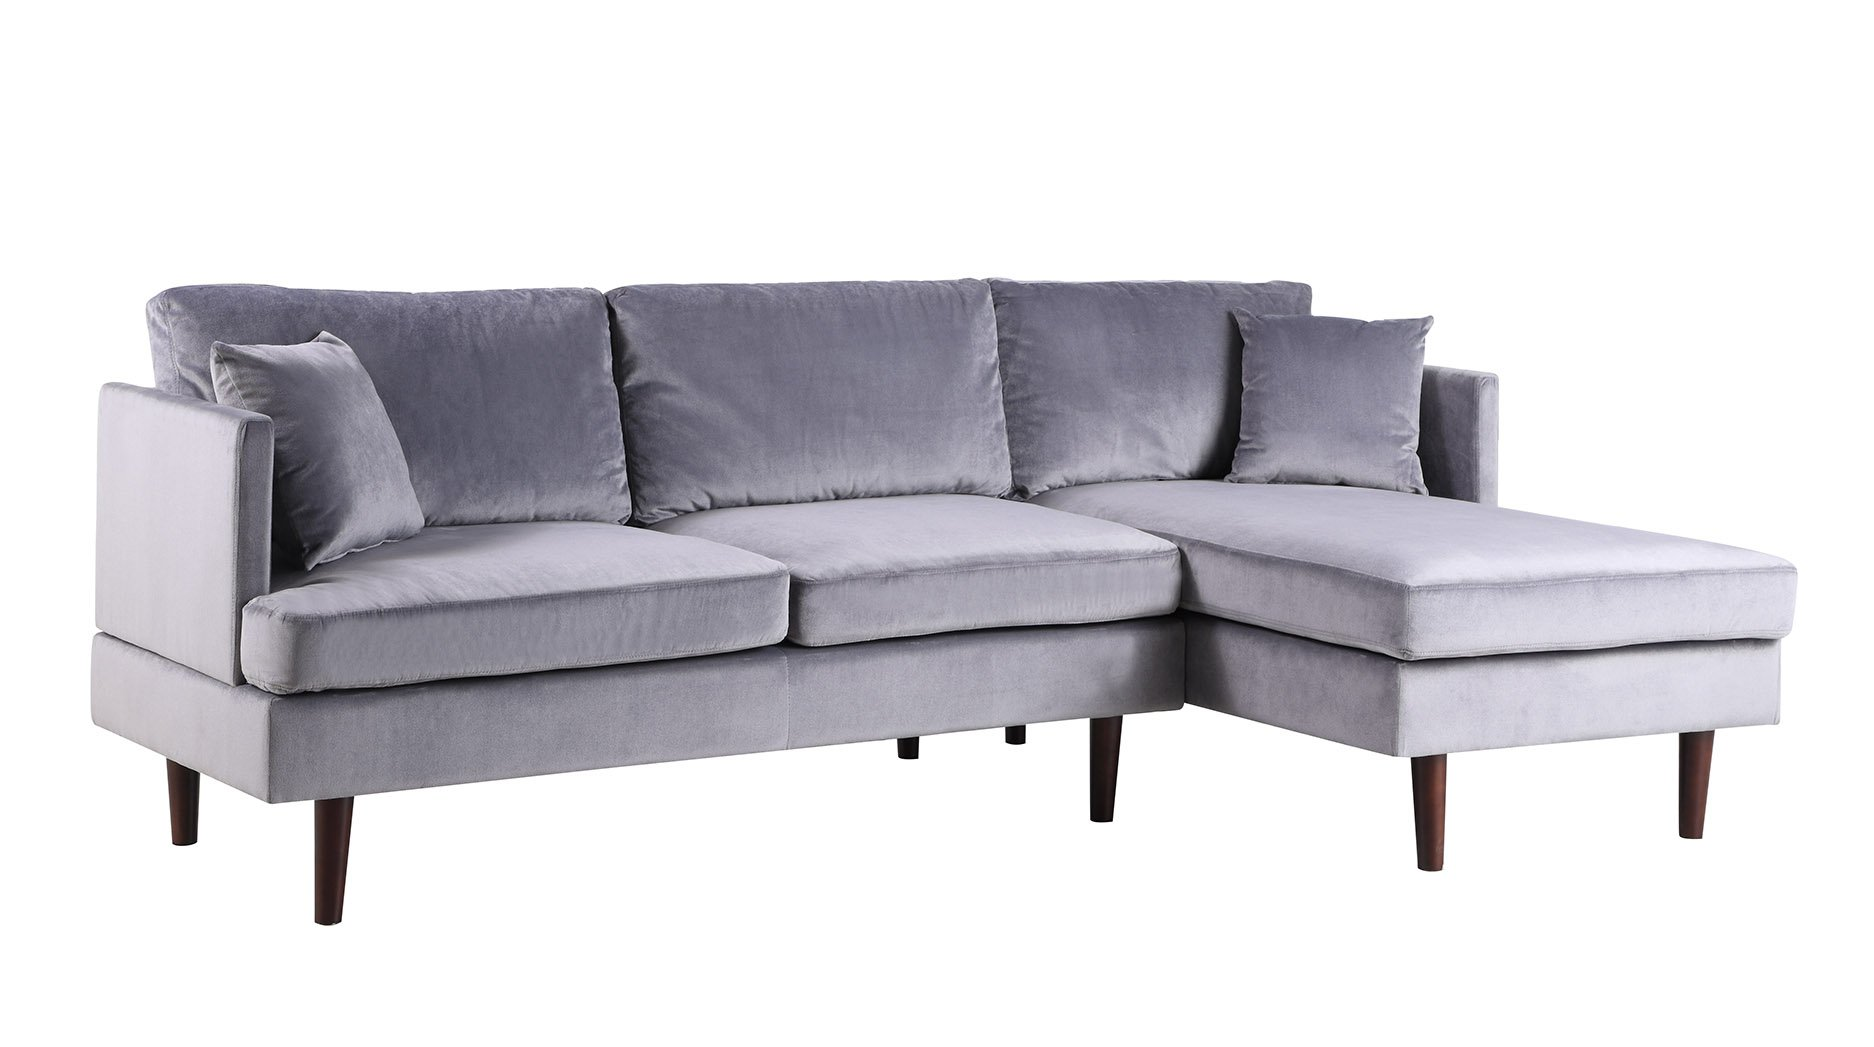 Sofamania Mid-Century Modern Brush Microfiber Sectional Sofa, L-Shape Couch with Extra Wide Chaise Lounge (Grey), Large - Family room / living room sectional sofa with an extra wide chaise lounge for maximum comfort. Ultra soft and durable brush microfiber fabric upholstery, loose back pillows for a plush look and comfort. Sits up to 4 people comfortably. Available in various fun and vibrant colors to best fit your home decor. - sofas-couches, living-room-furniture, living-room - 71E86%2BCW1YL -